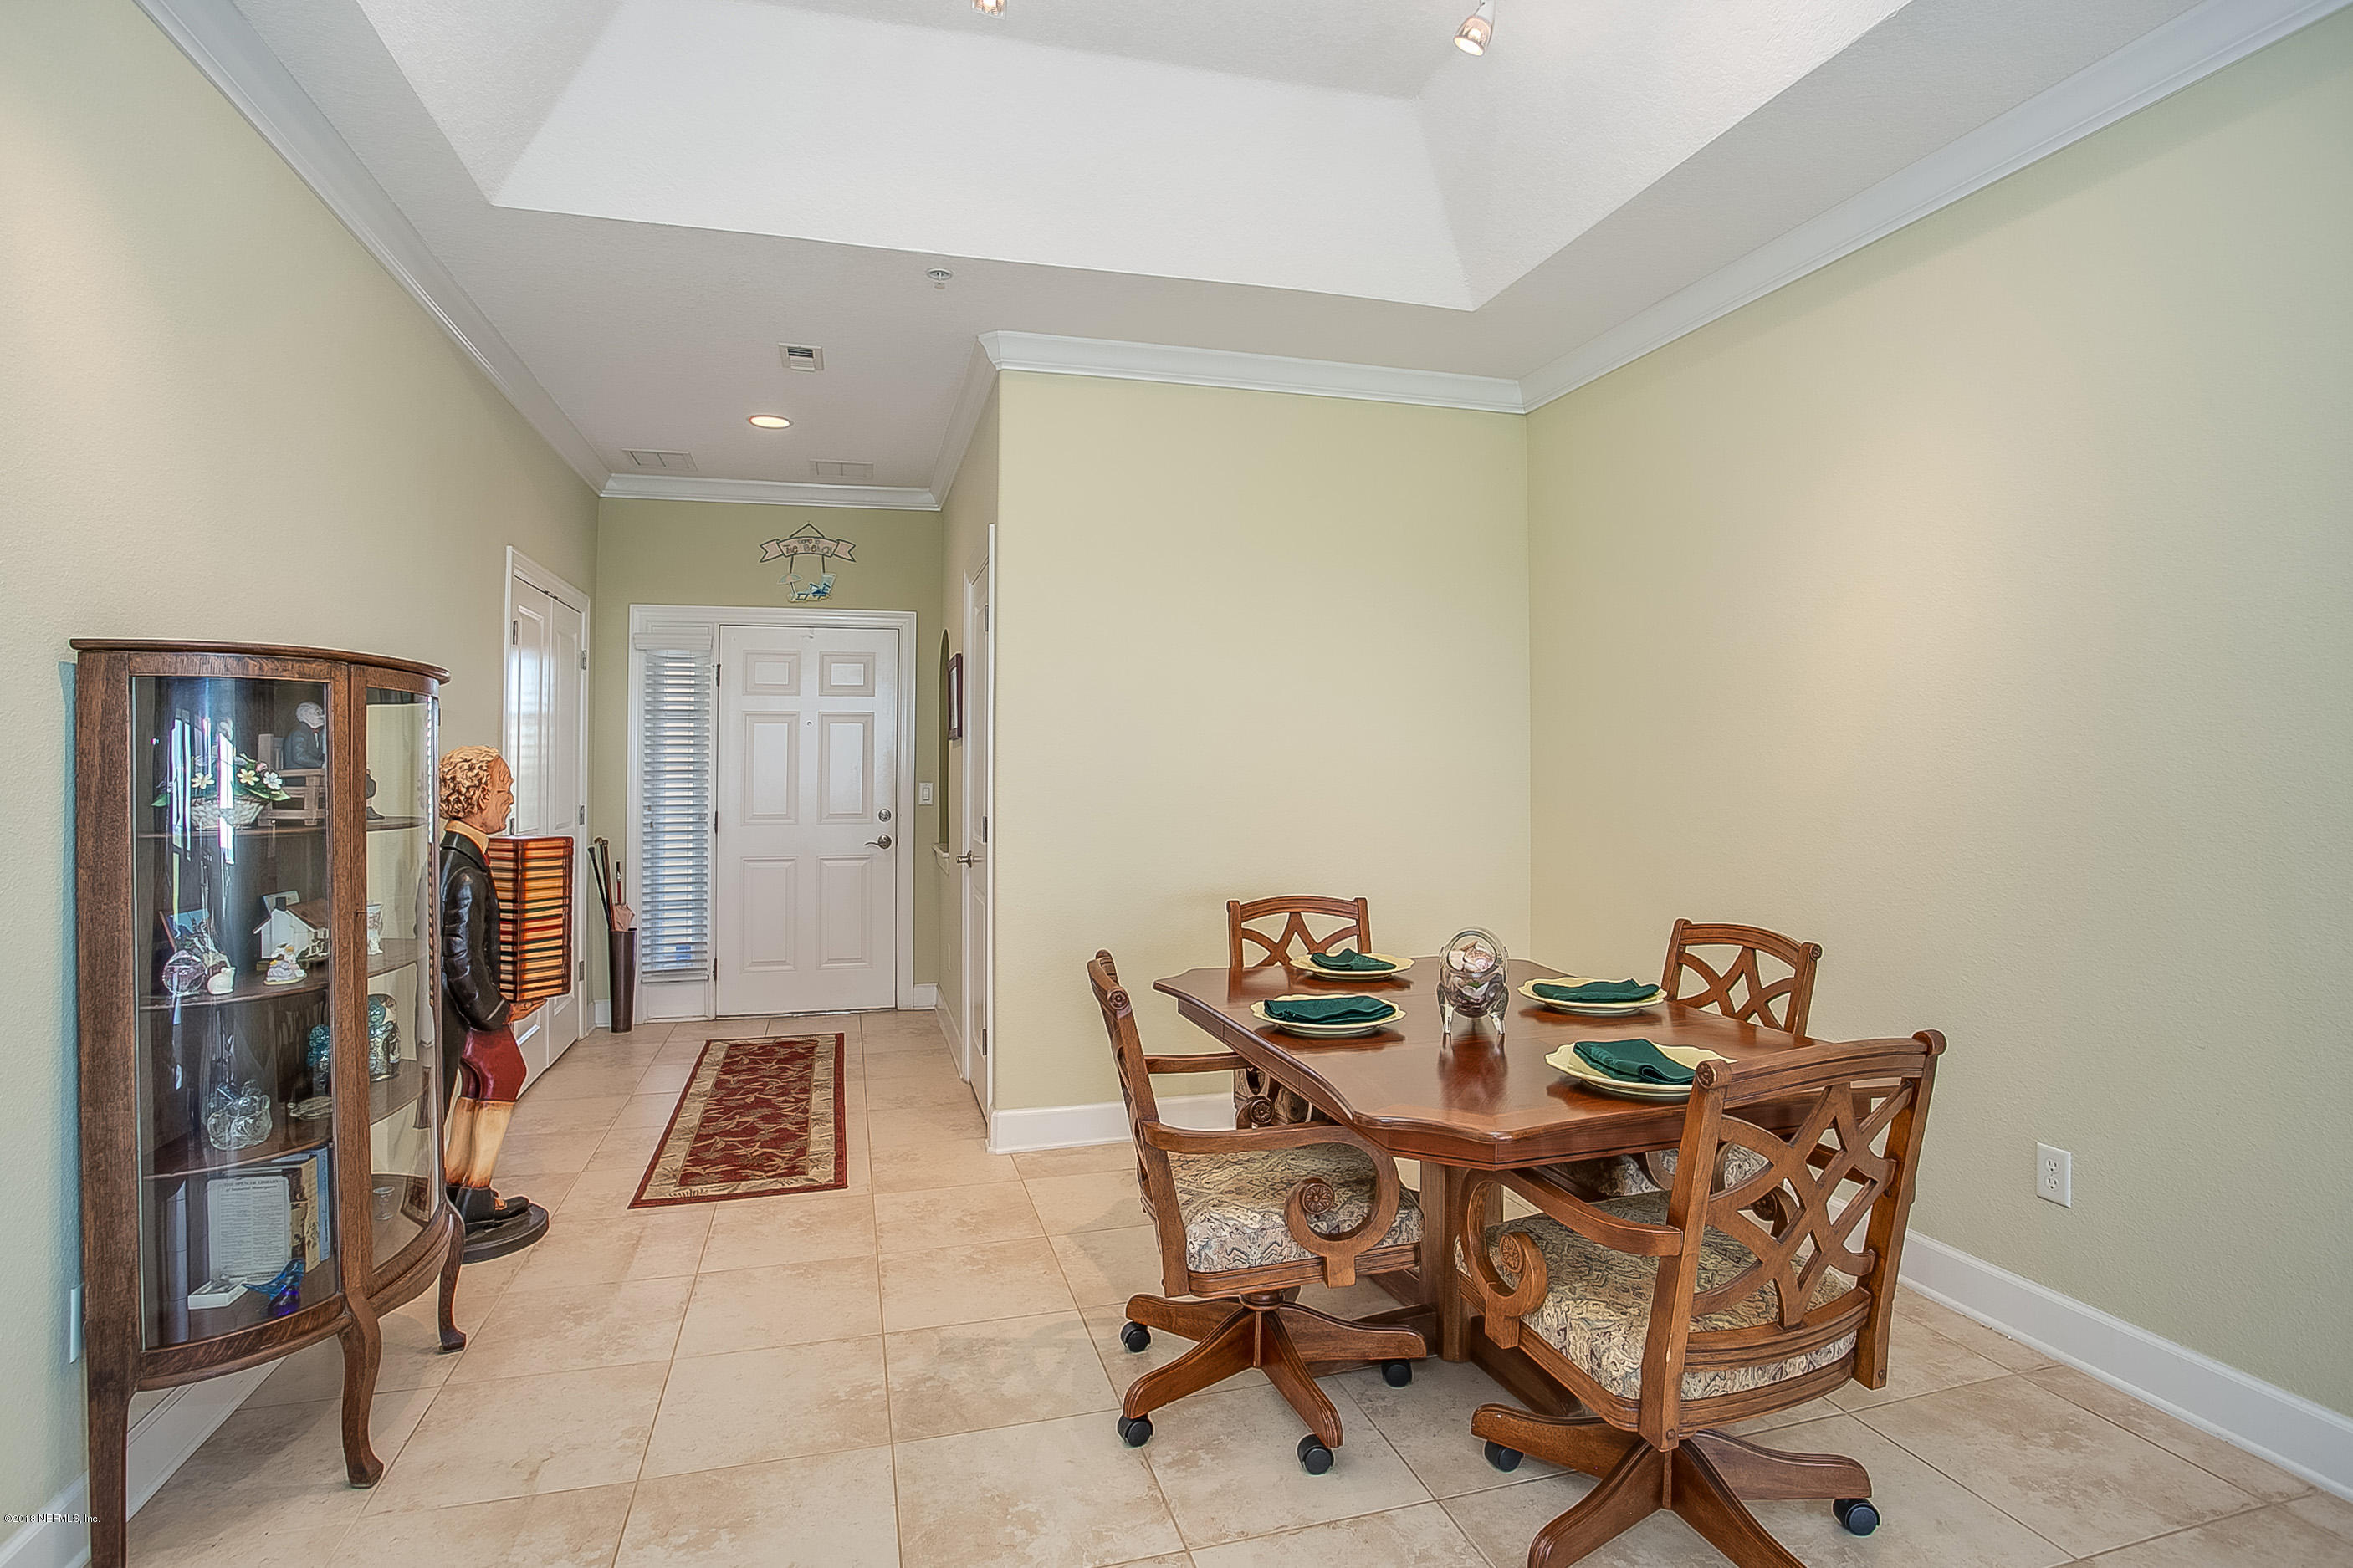 435 OCEAN GRANDE, PONTE VEDRA BEACH, FLORIDA 32082, 3 Bedrooms Bedrooms, ,3 BathroomsBathrooms,Residential - condos/townhomes,For sale,OCEAN GRANDE,964773